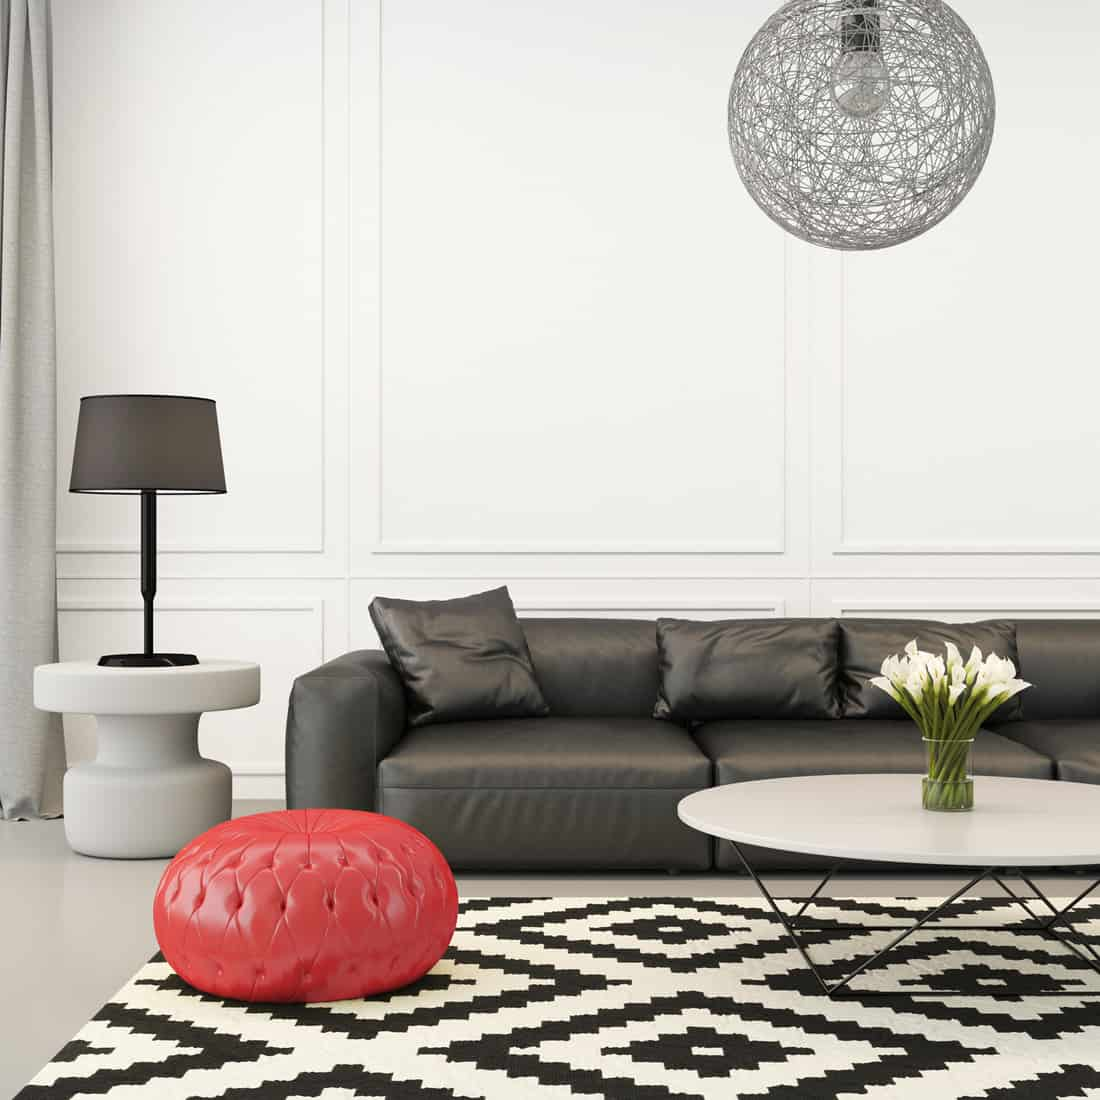 Square composition showing eclectic black and white living room with a red cushion stool, with ornate elements around